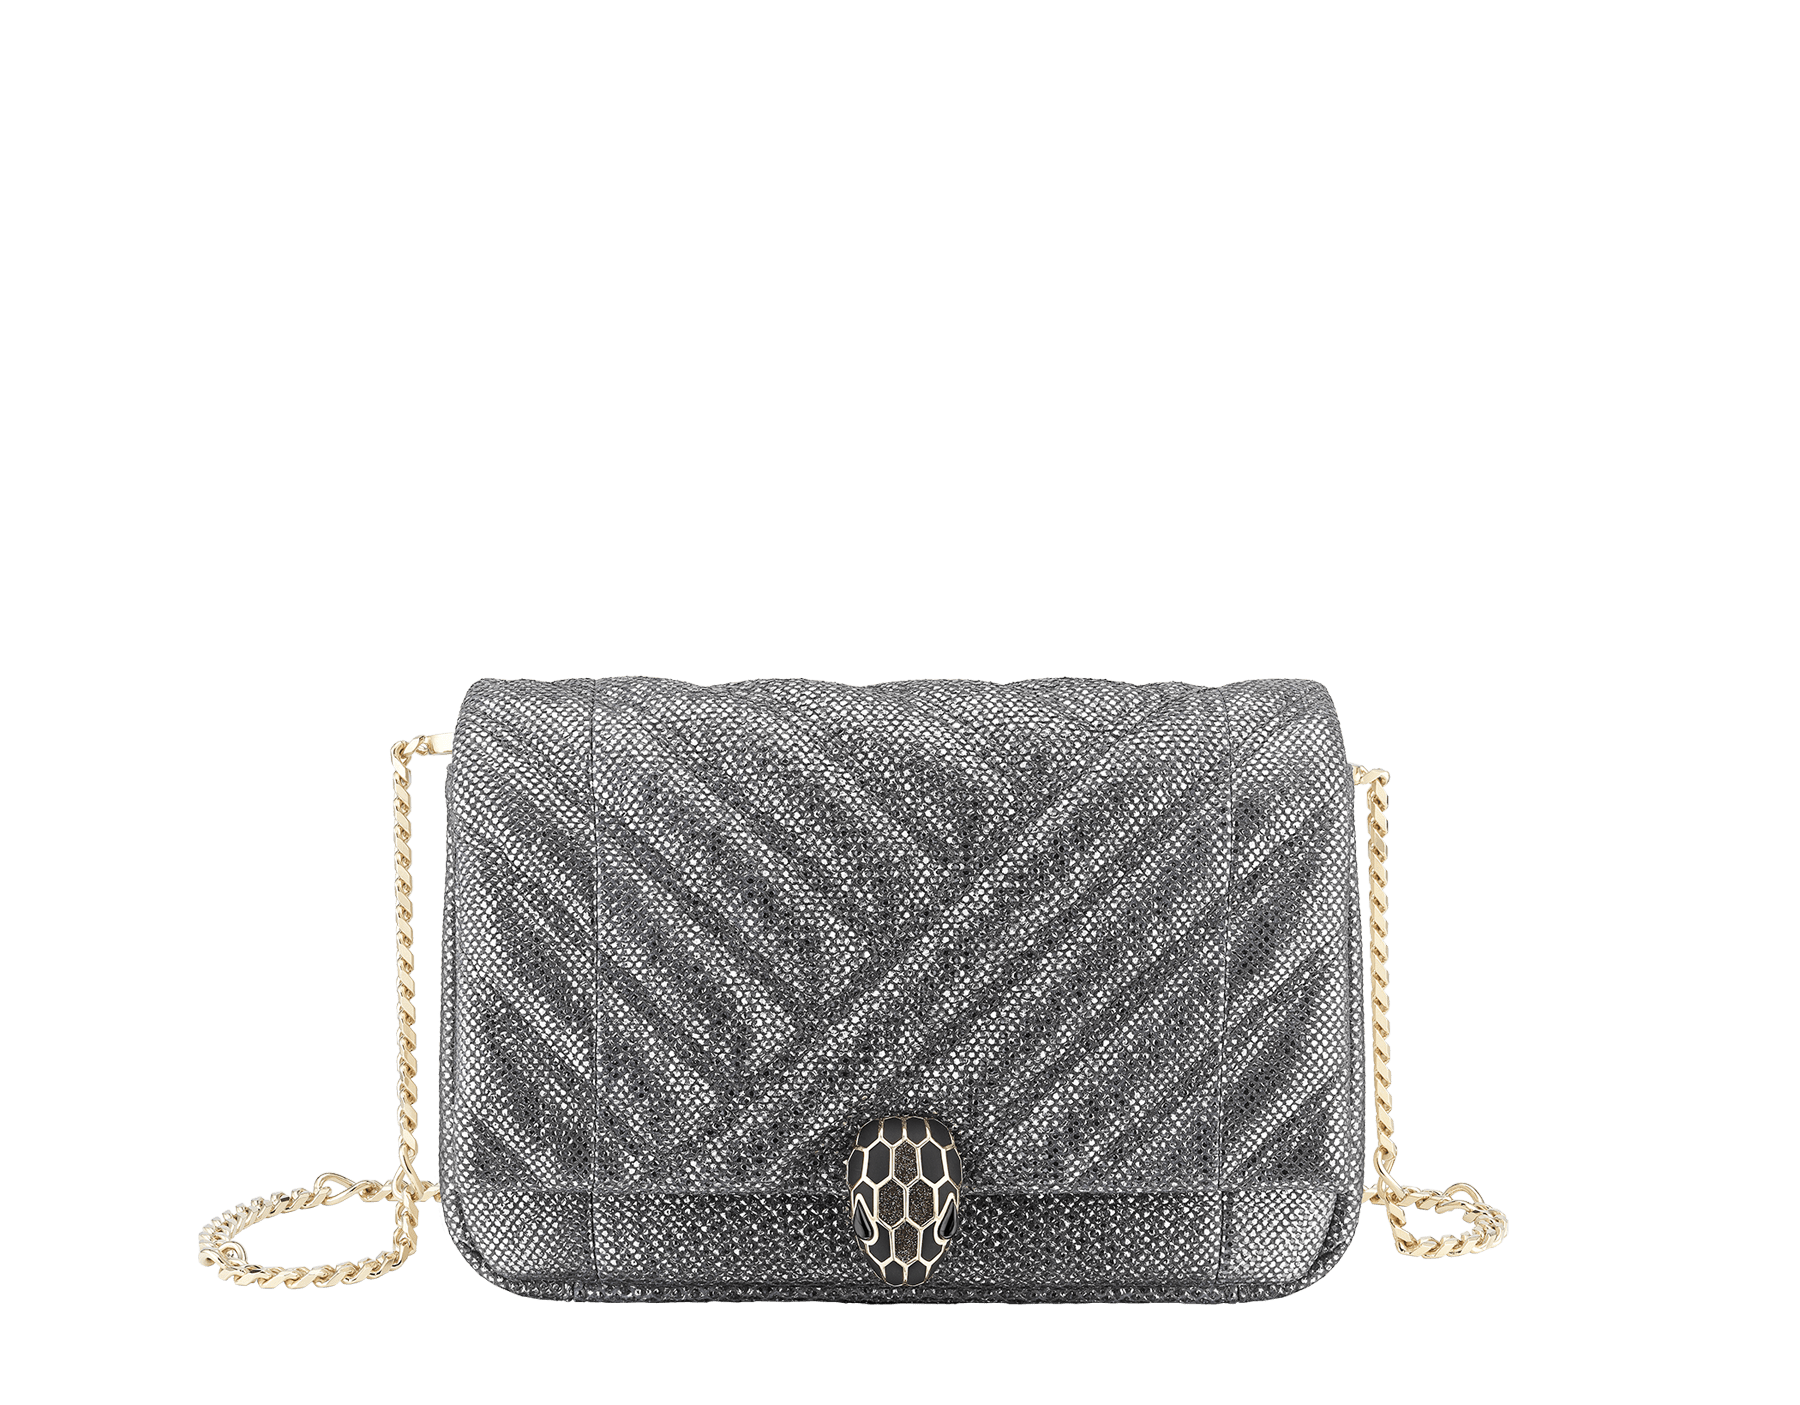 Serpenti Cabochon micro bag in soft matelassé charcoal diamond metallic karung, with a graphic motif. Tempting light gold brass-plated snake head closure in black and glitter charcoal diamond enamel and black onyx eyes. 288806 image 1